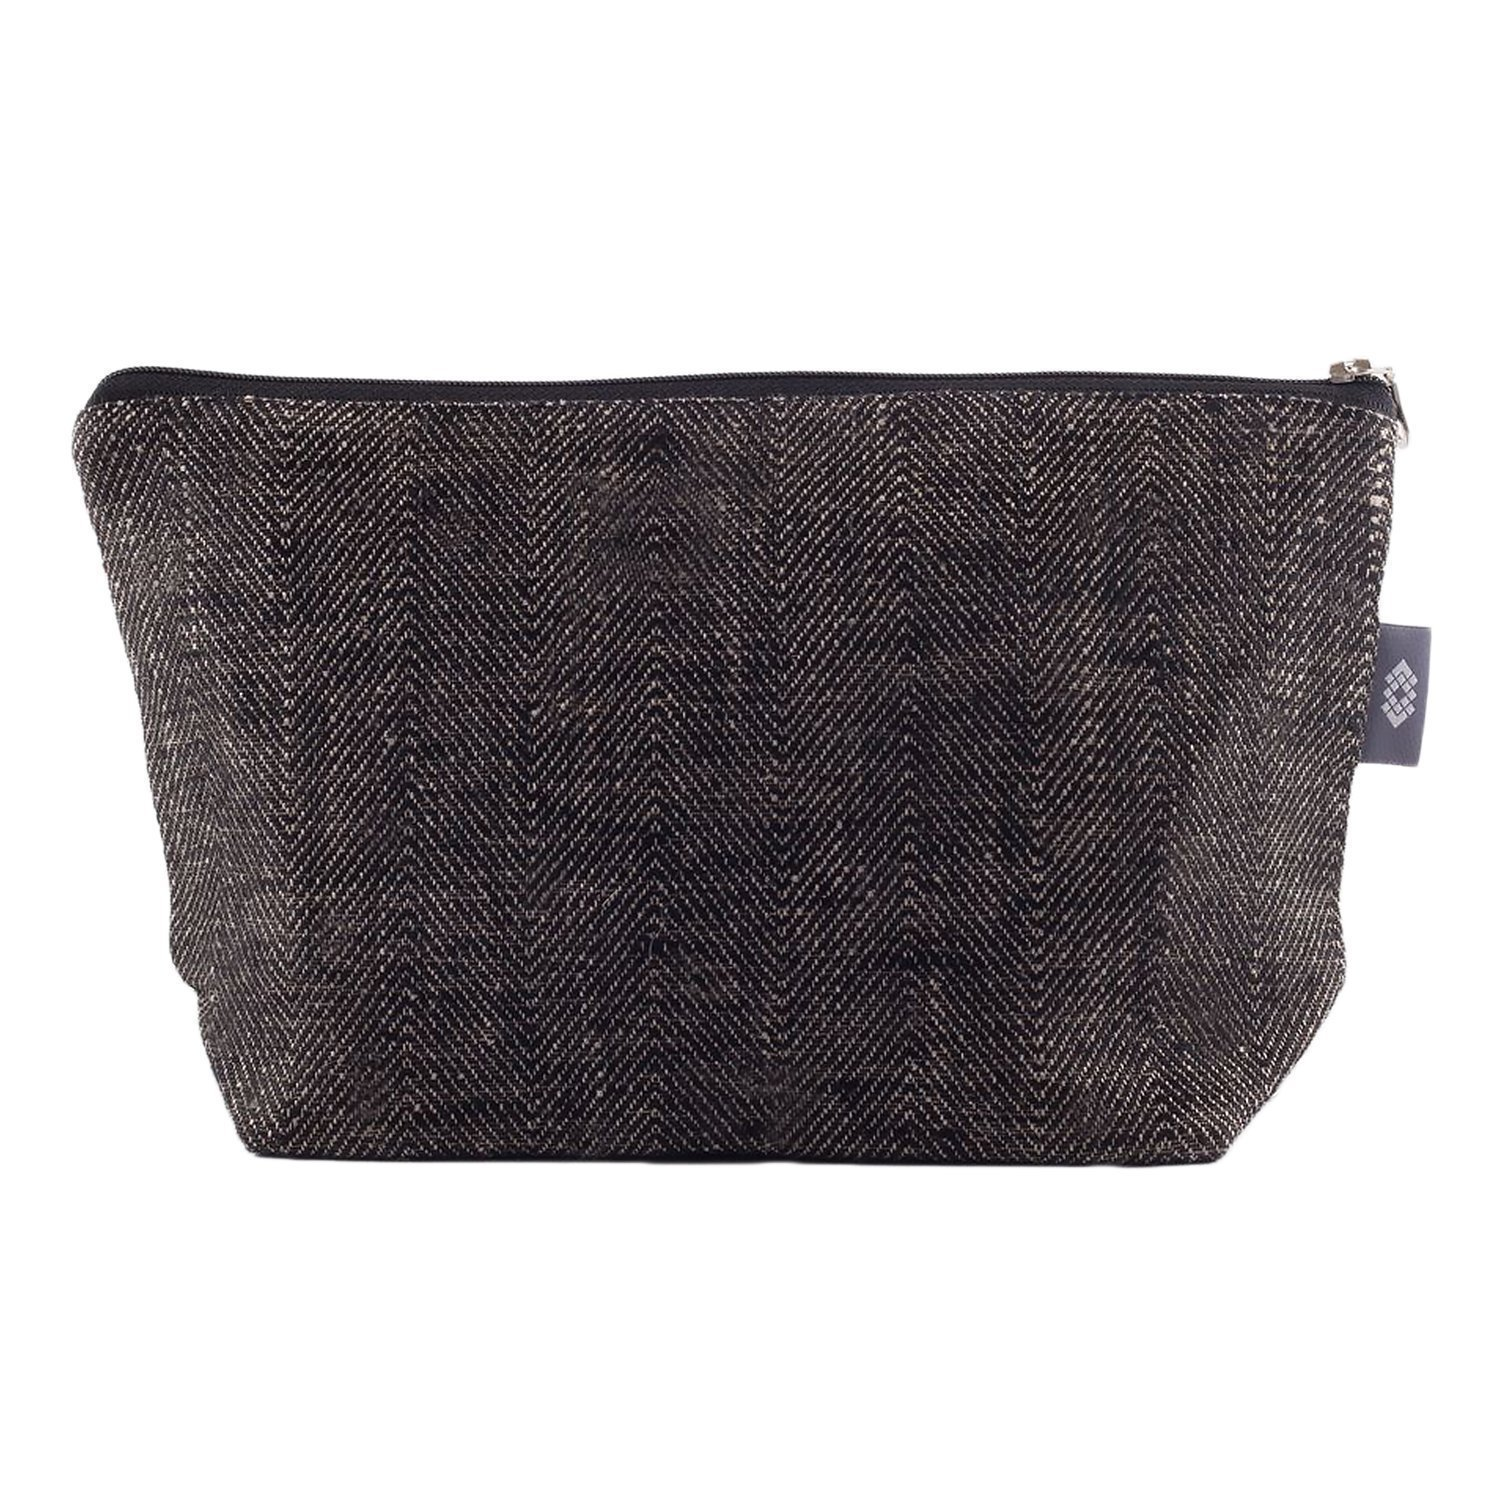 Handmade Black Canvas Makeup Bag - 100% Linen Flax Compact Cosmetic Travel Pouch Luxury Brush Case